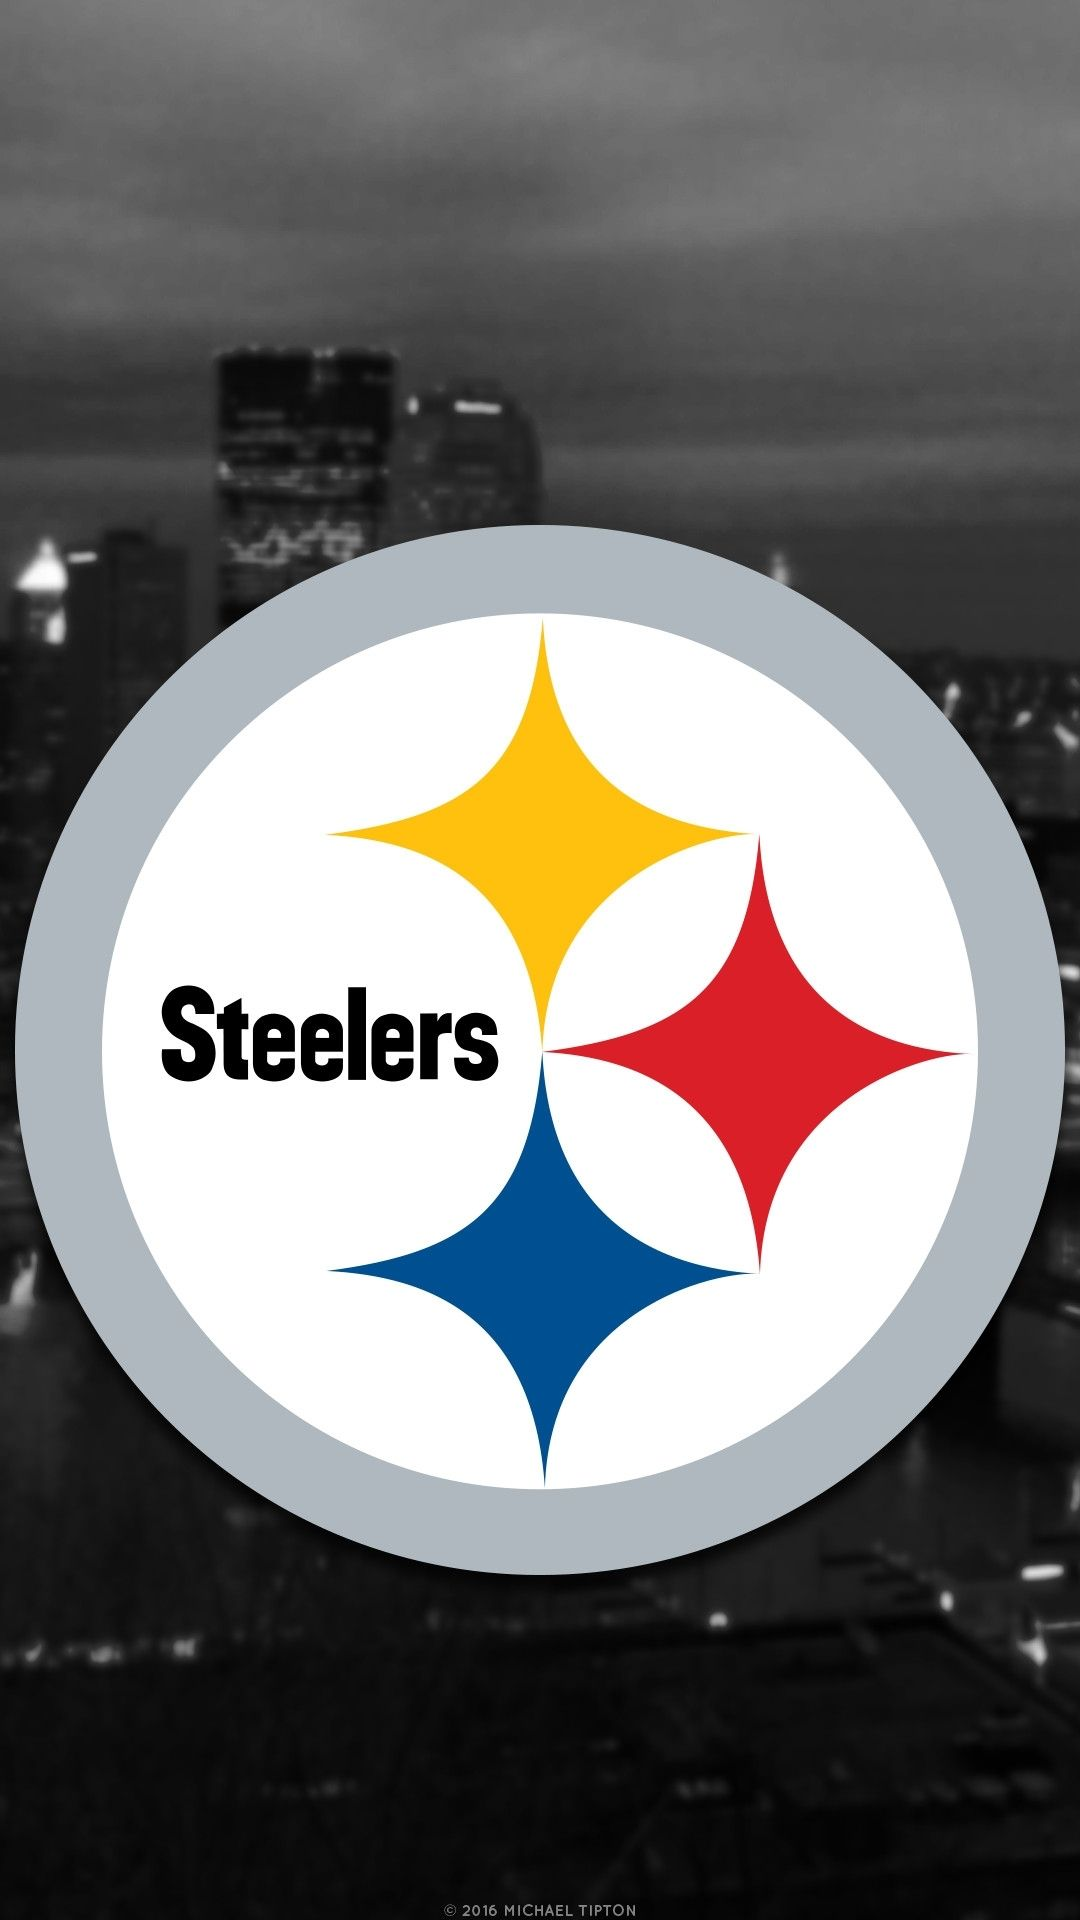 10 Most Popular Steelers Wallpapers For Iphone Full Hd 1920 1080 For Pc Desktop Pittsburgh Steelers Wallpaper Steelers Pittsburgh Steelers Logo